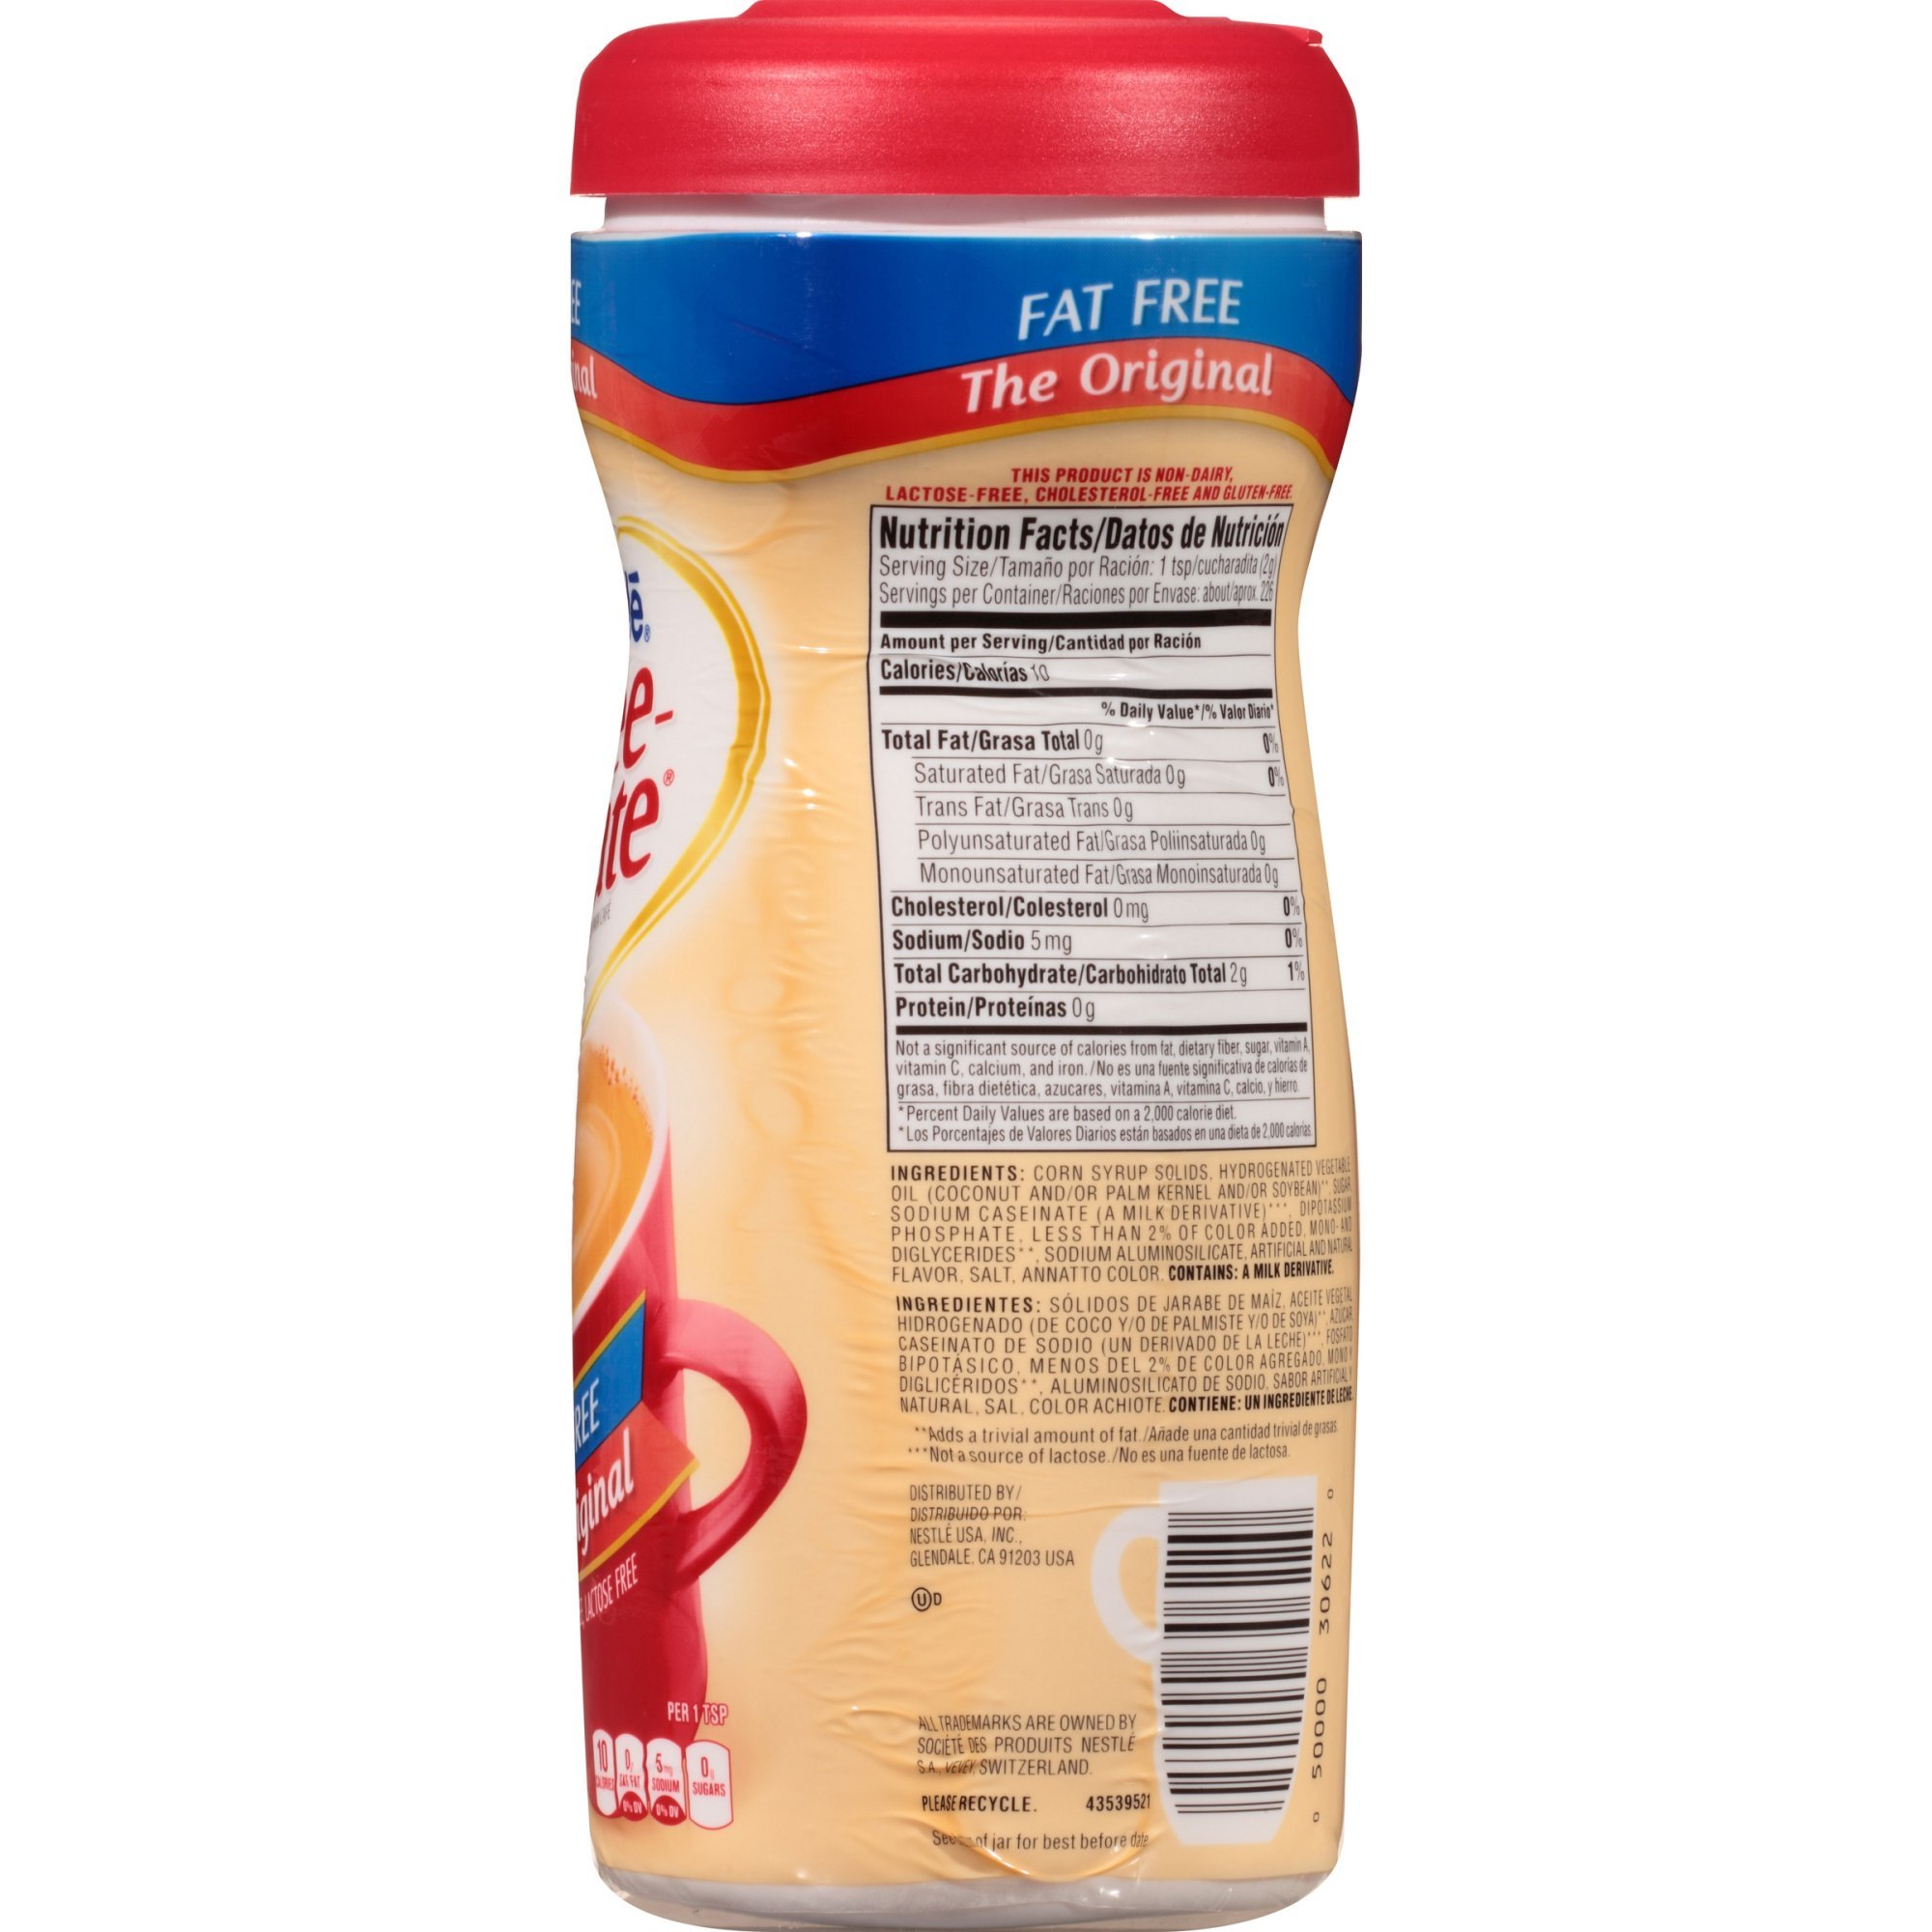 COFFEE-MATE Original Fat Free Powder Coffee Creamer 16 oz. Canister (Pack of 3)